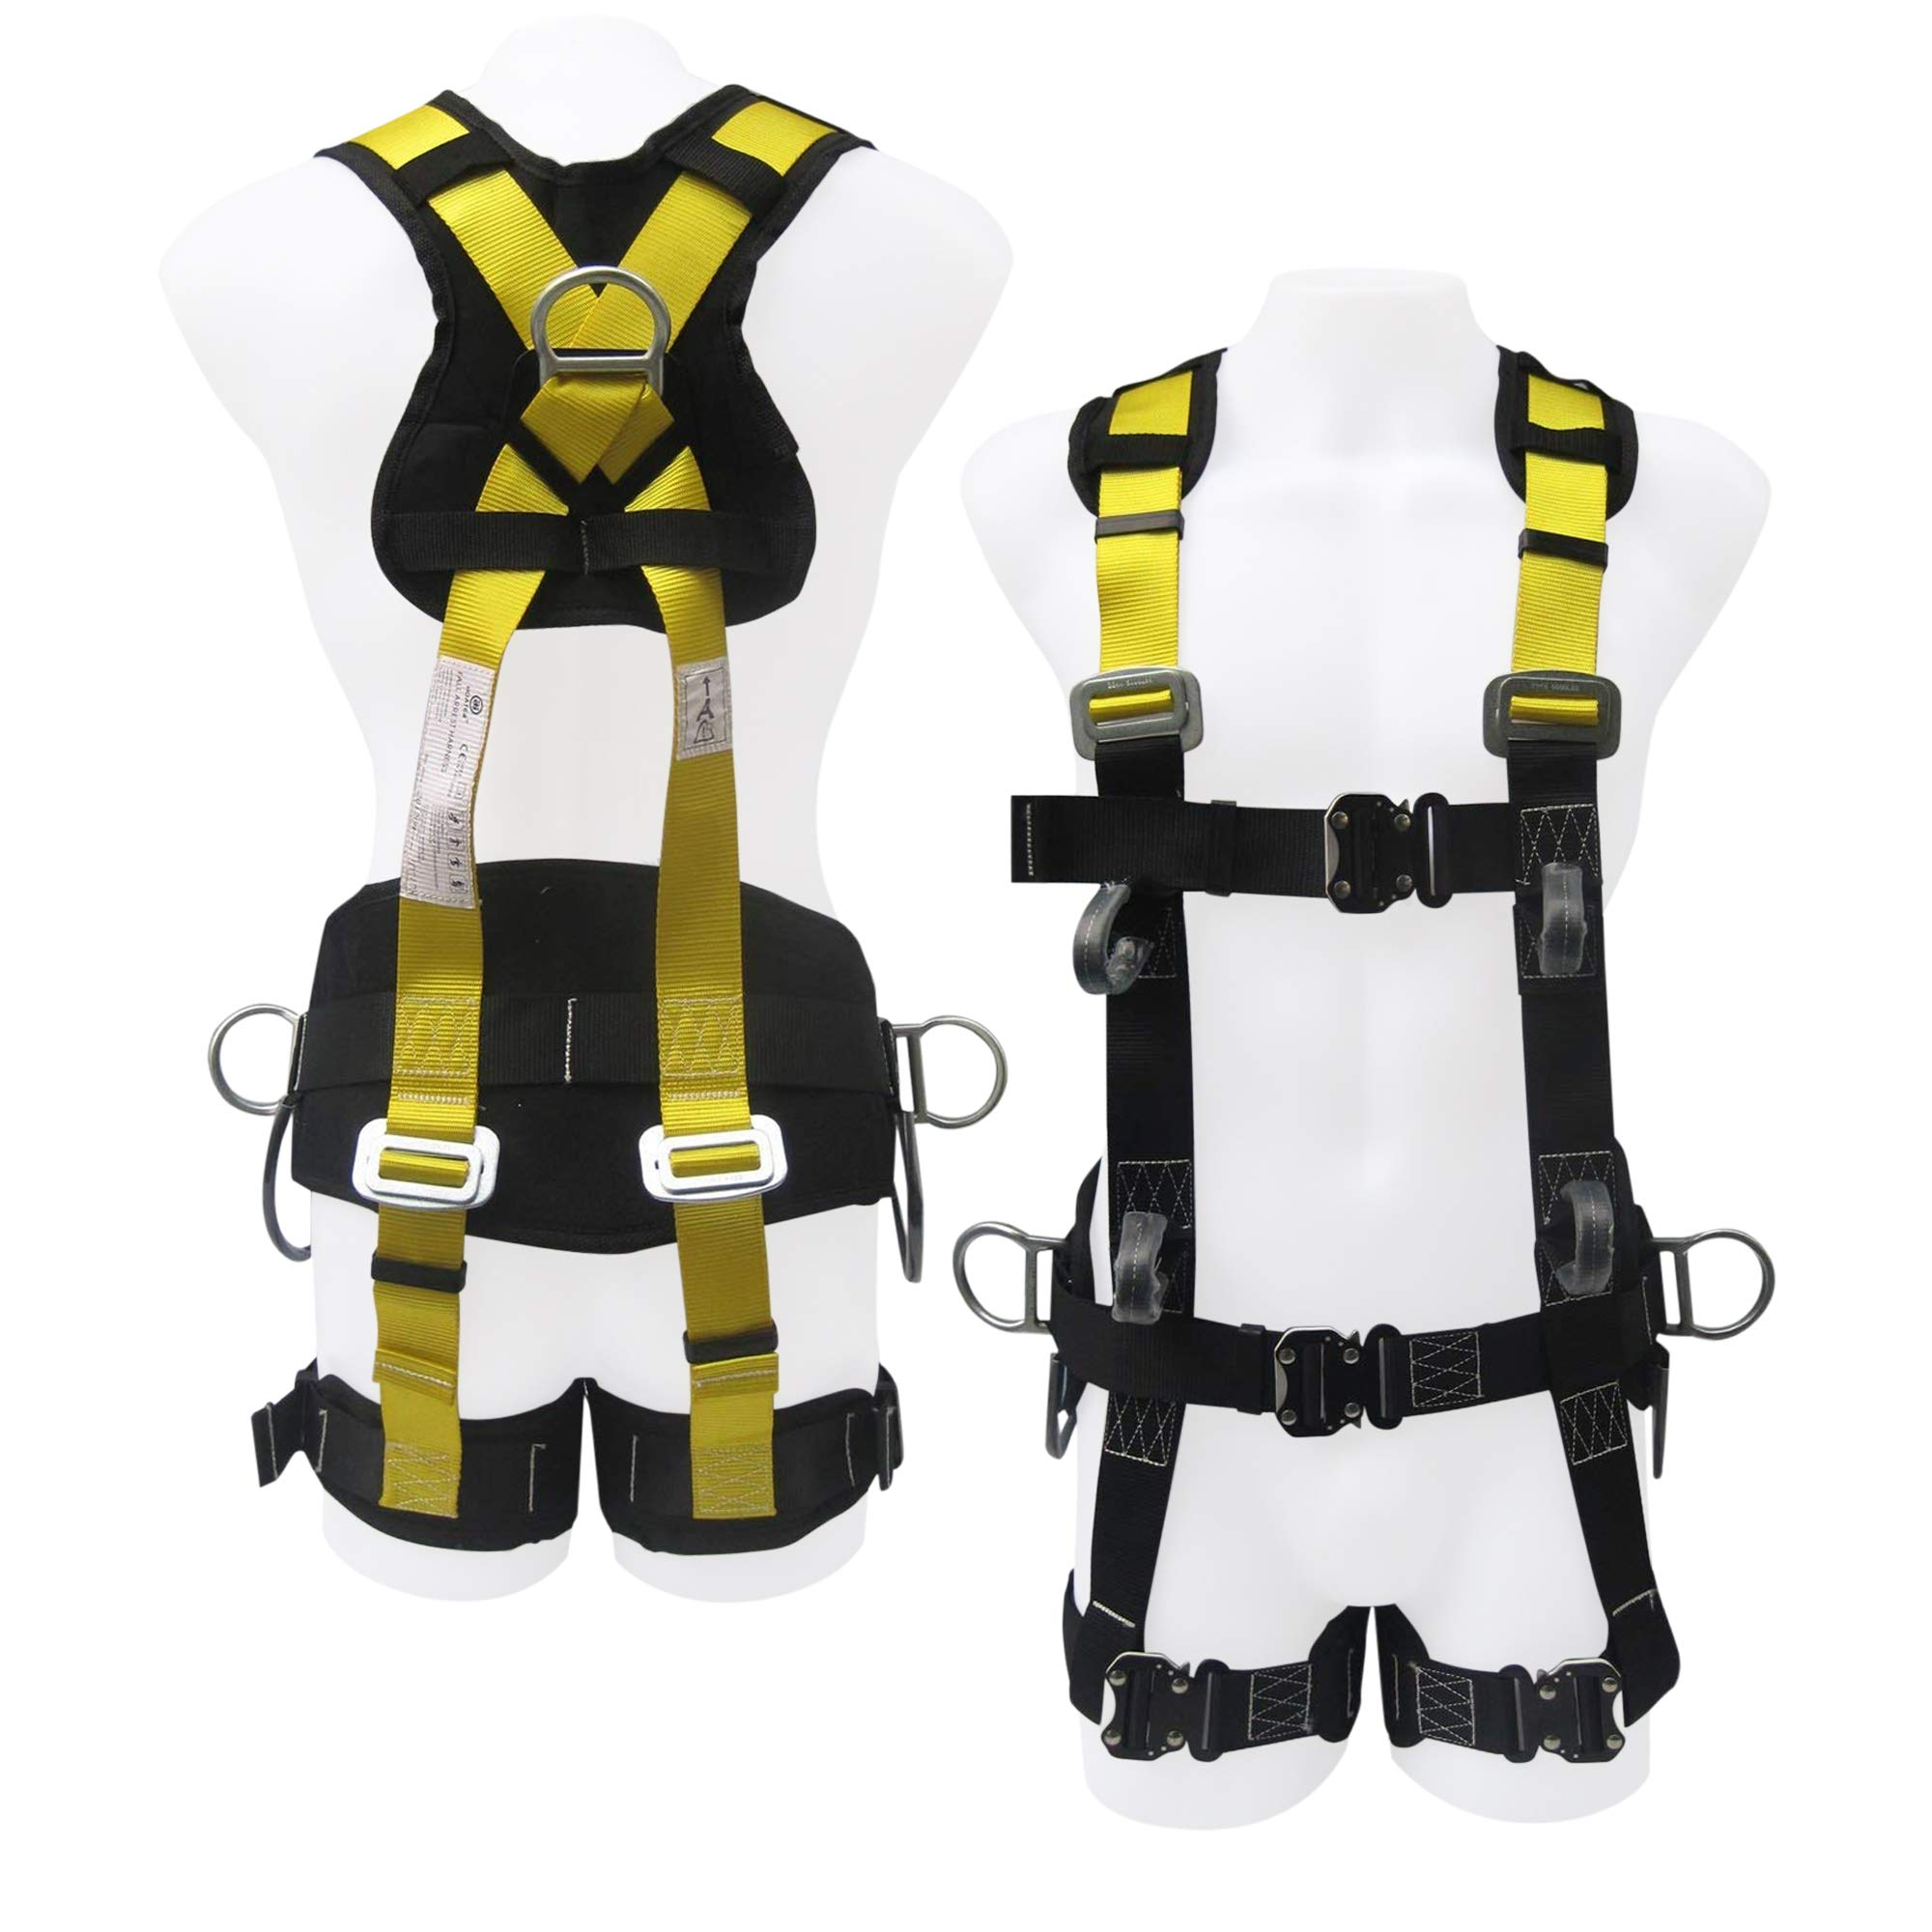 Commando Fall Protect Full-Body Safety Harness with Lanyard (ANSI and OSHA Compliant) by COMMANDO